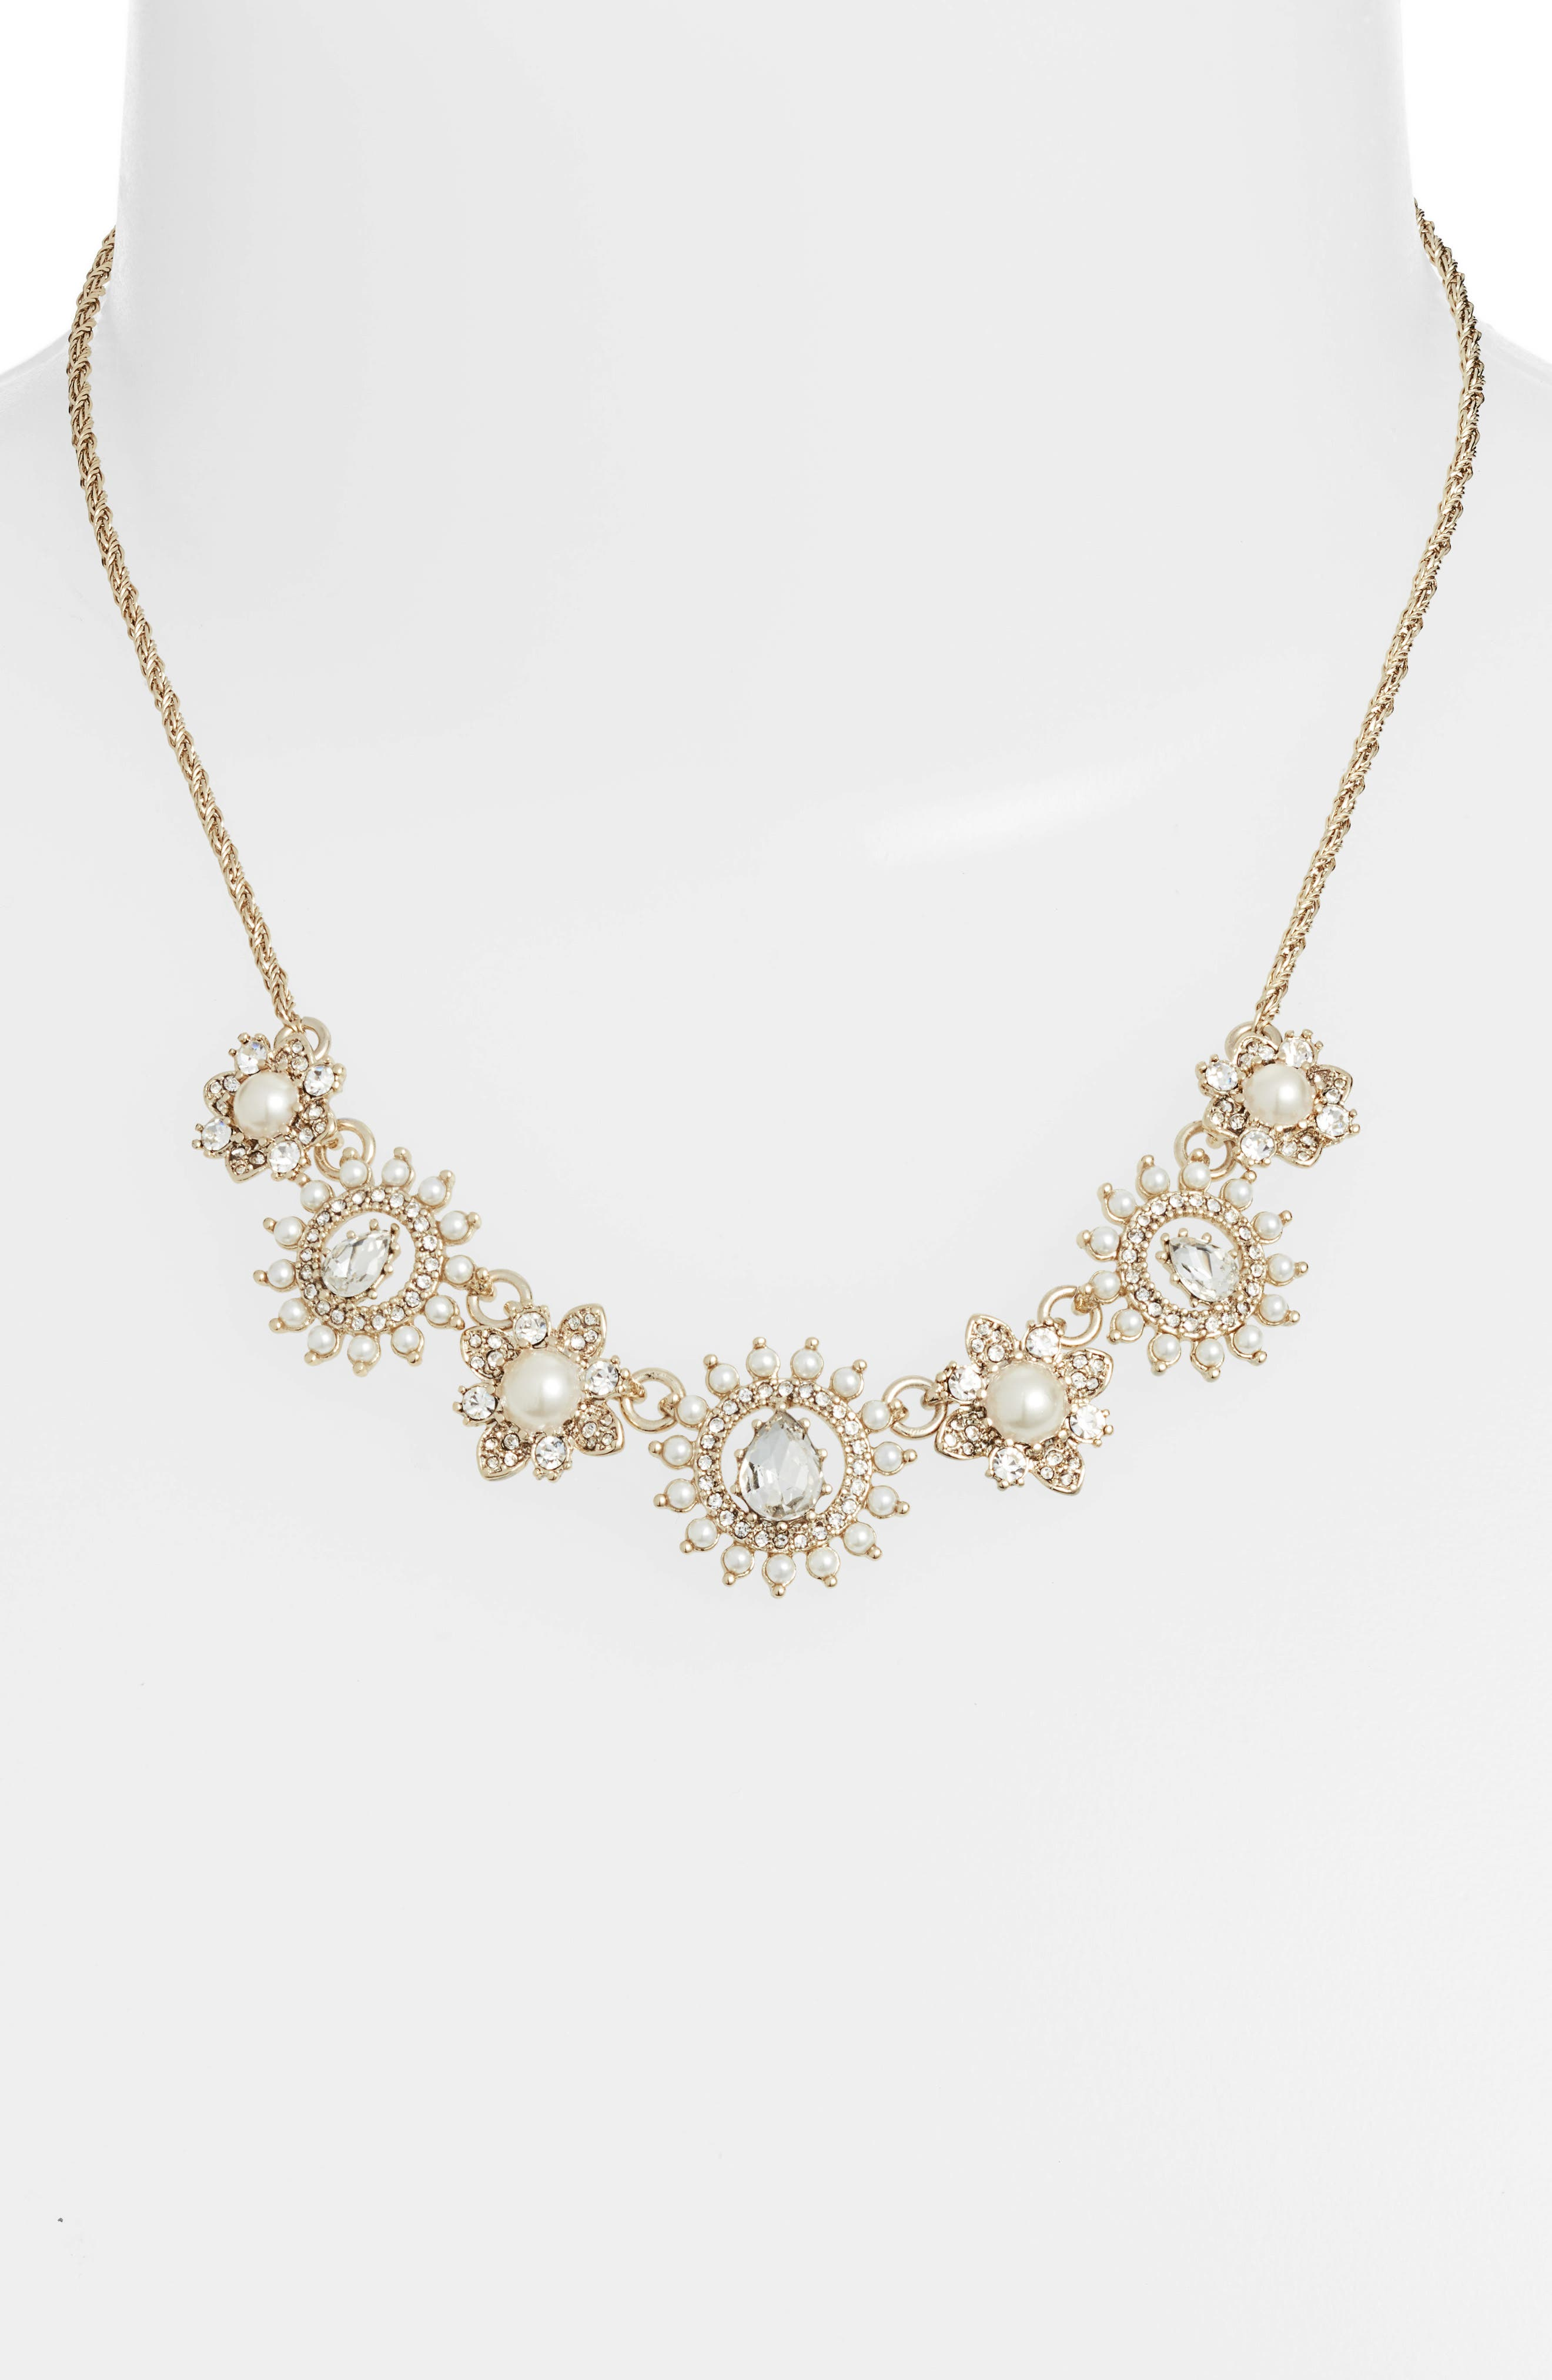 MARCHESA, Frontal Necklace, Alternate thumbnail 2, color, GOLD/ WHITE/ CRYSTAL